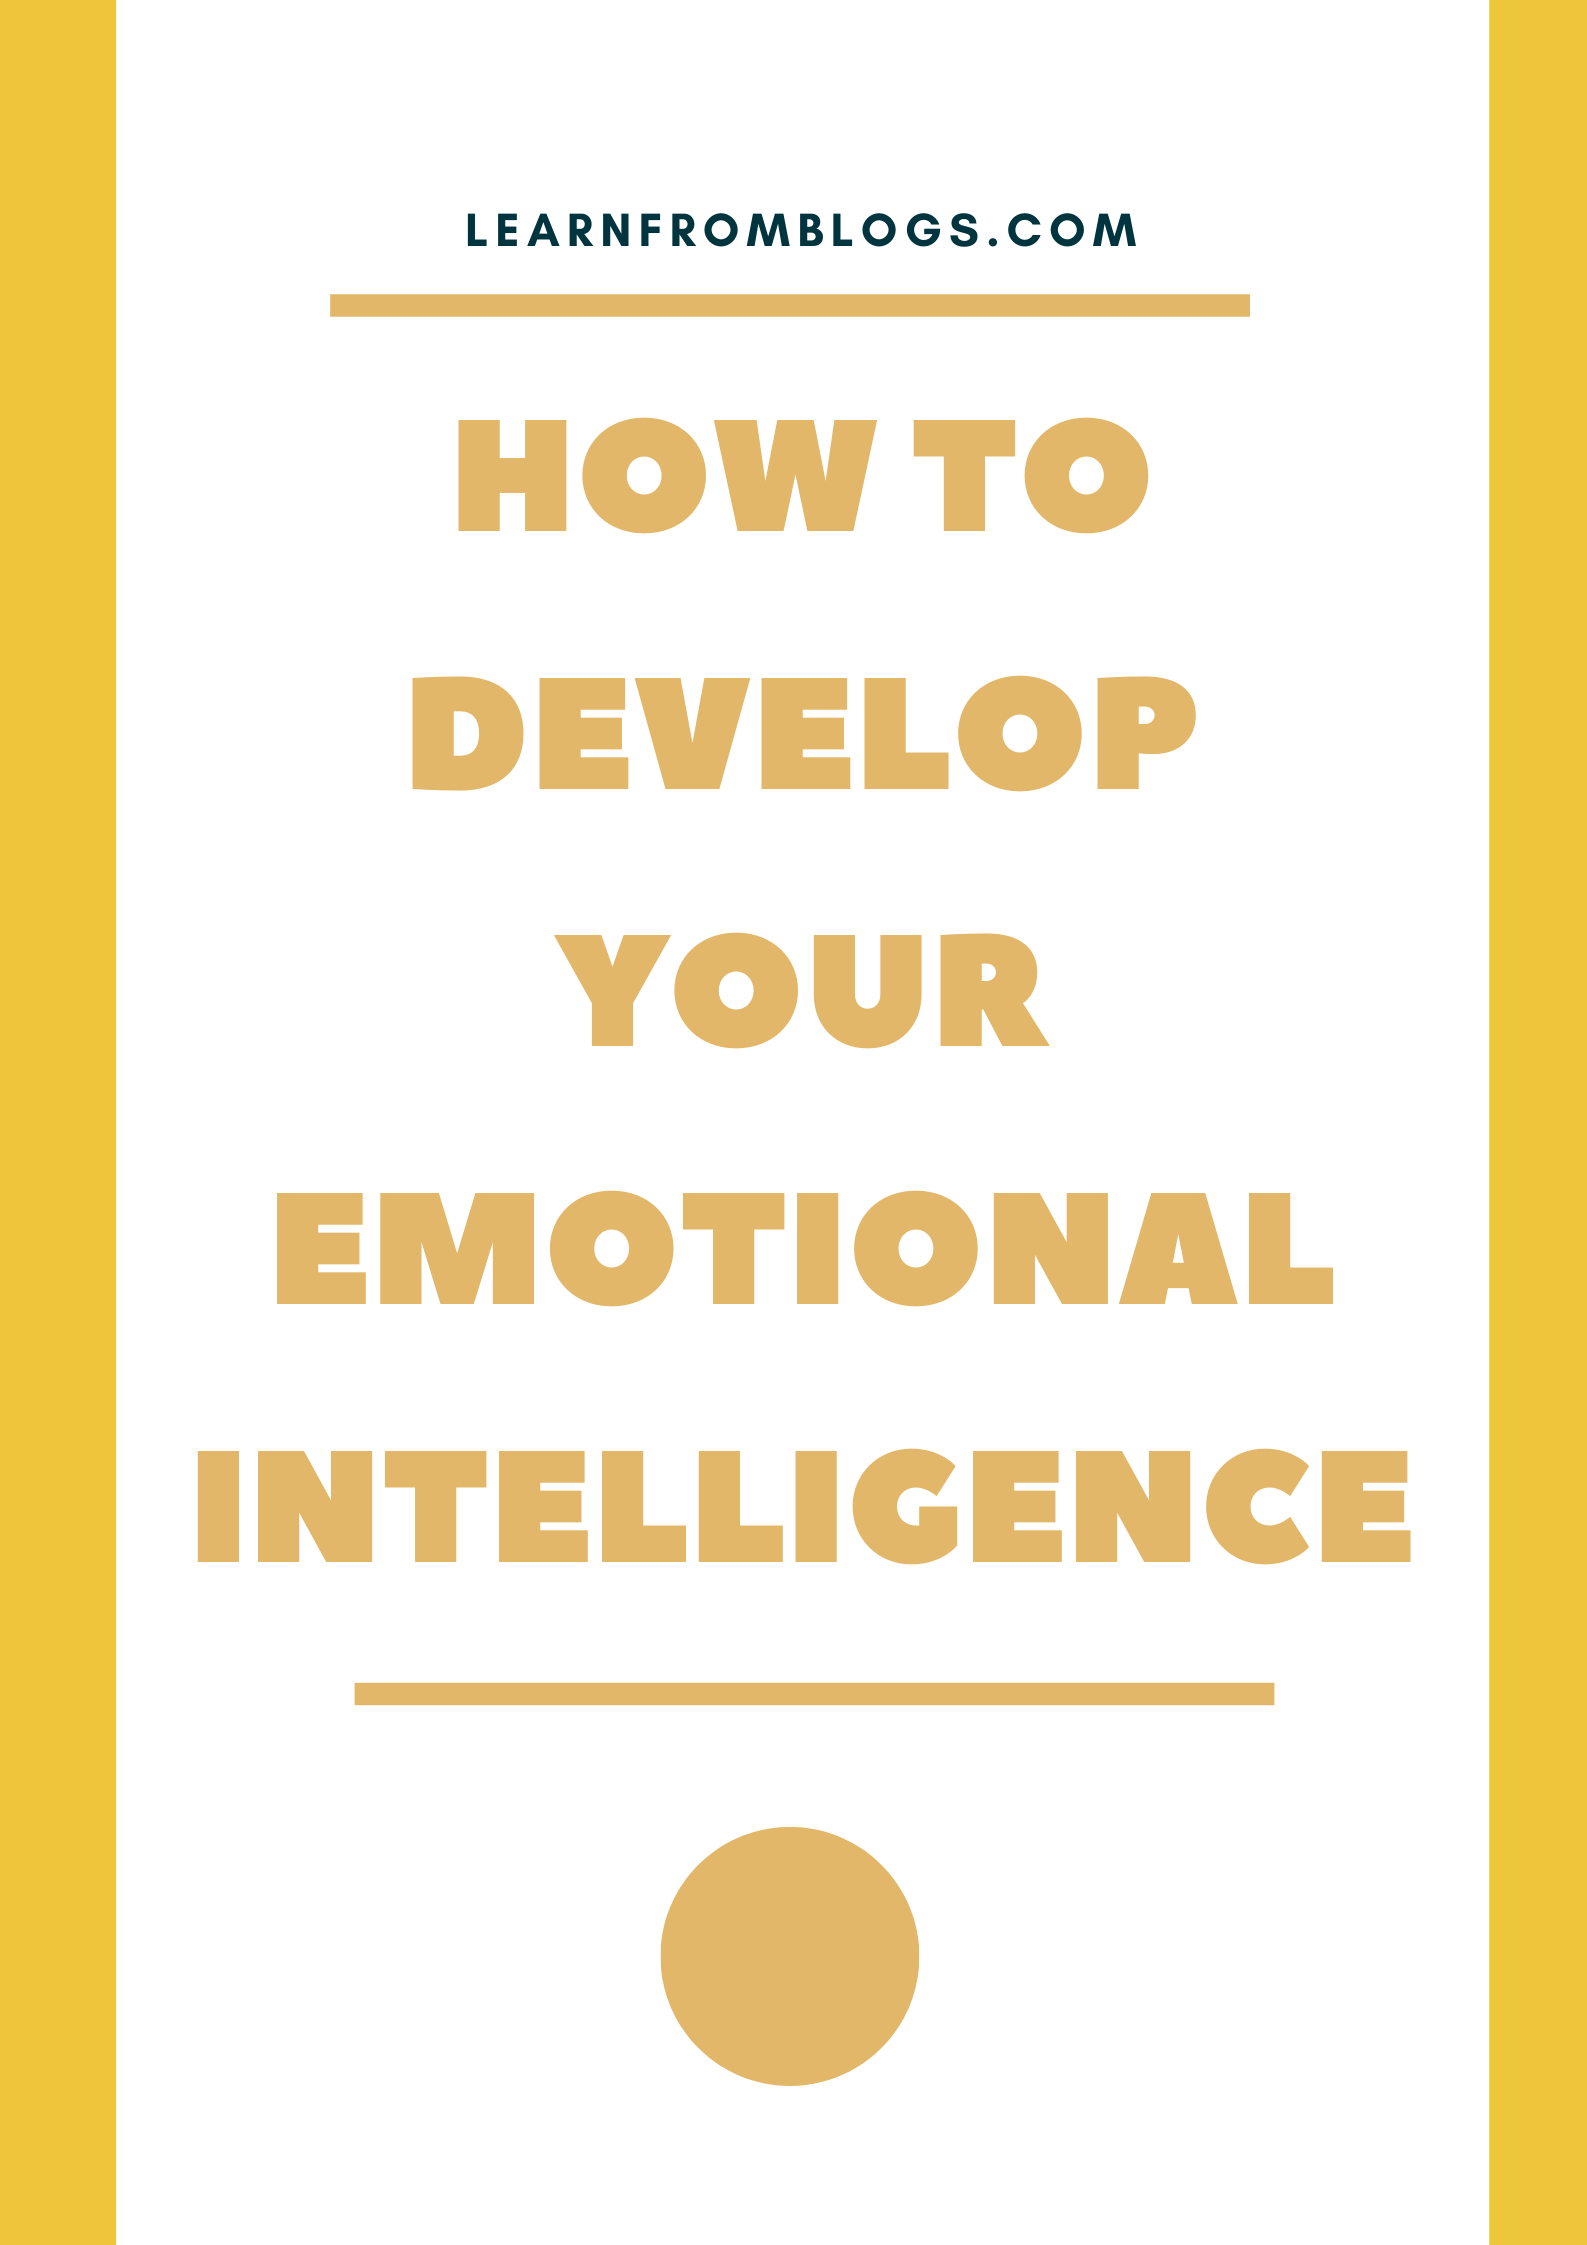 How To Develop Your Emotional Intelligence.png